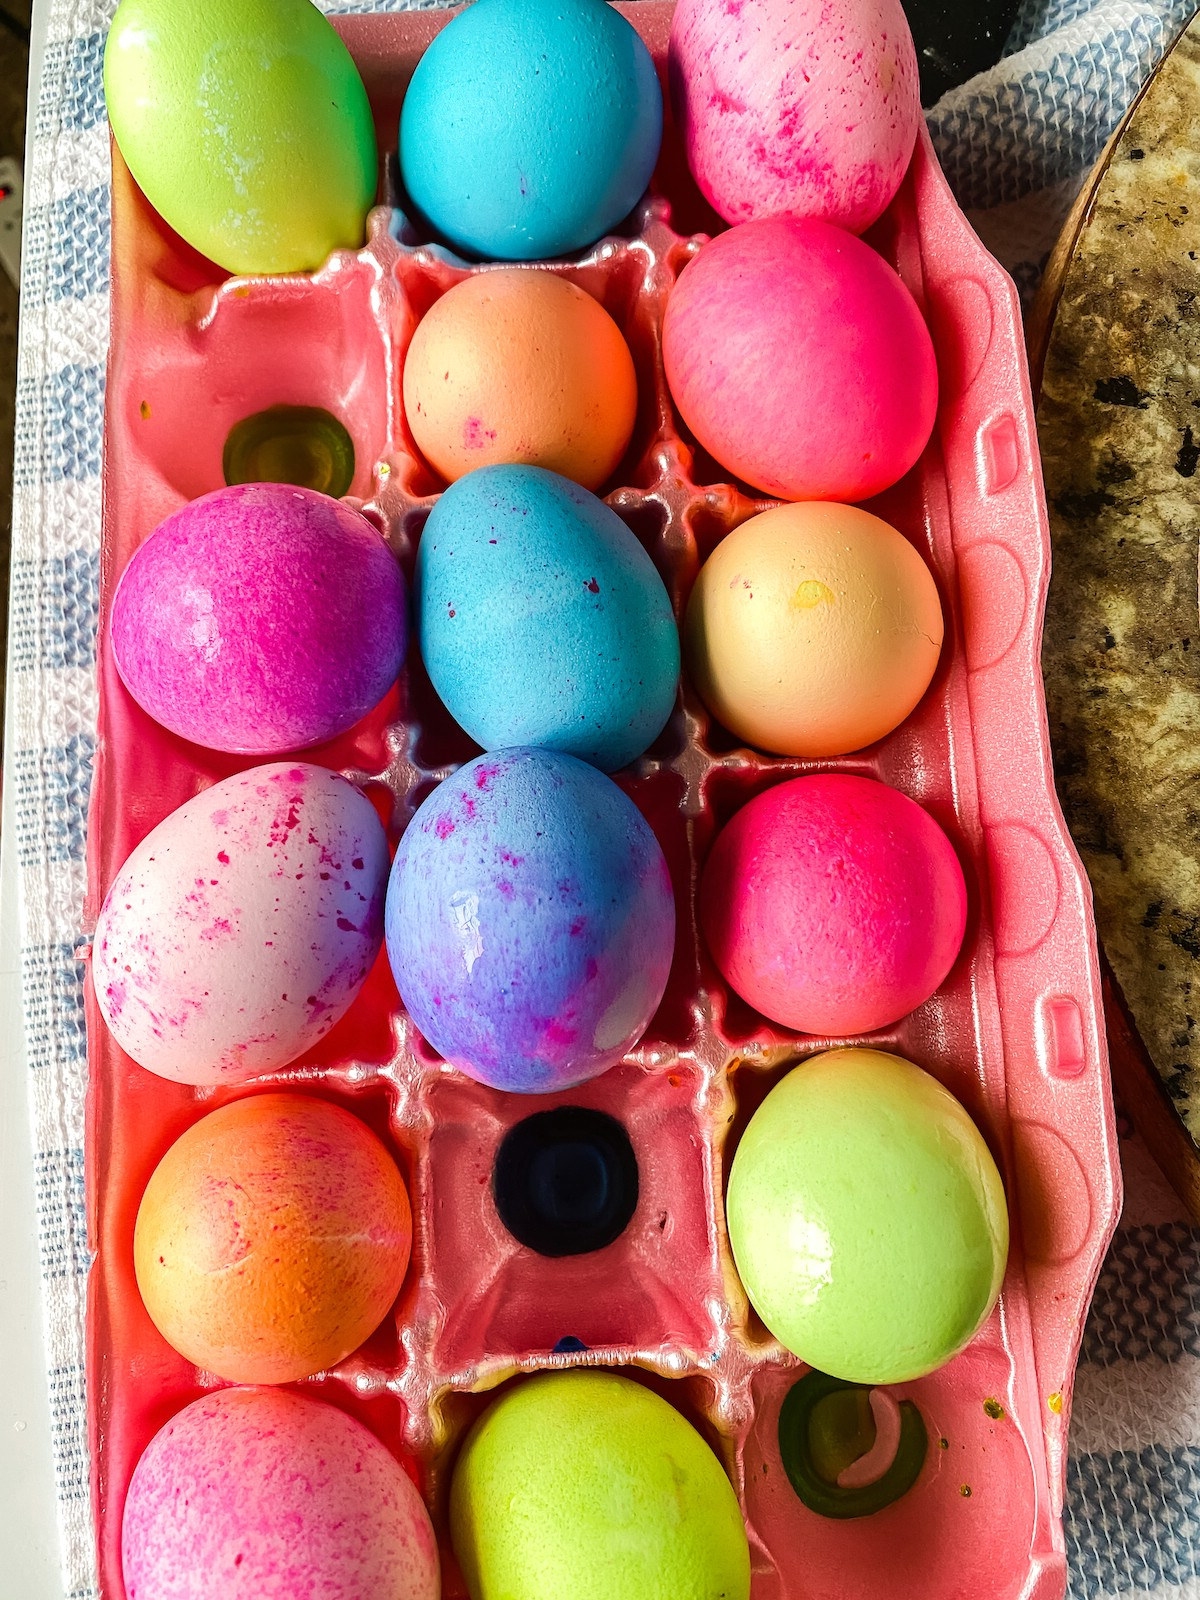 Dyed Easter eggs in pink egg carton